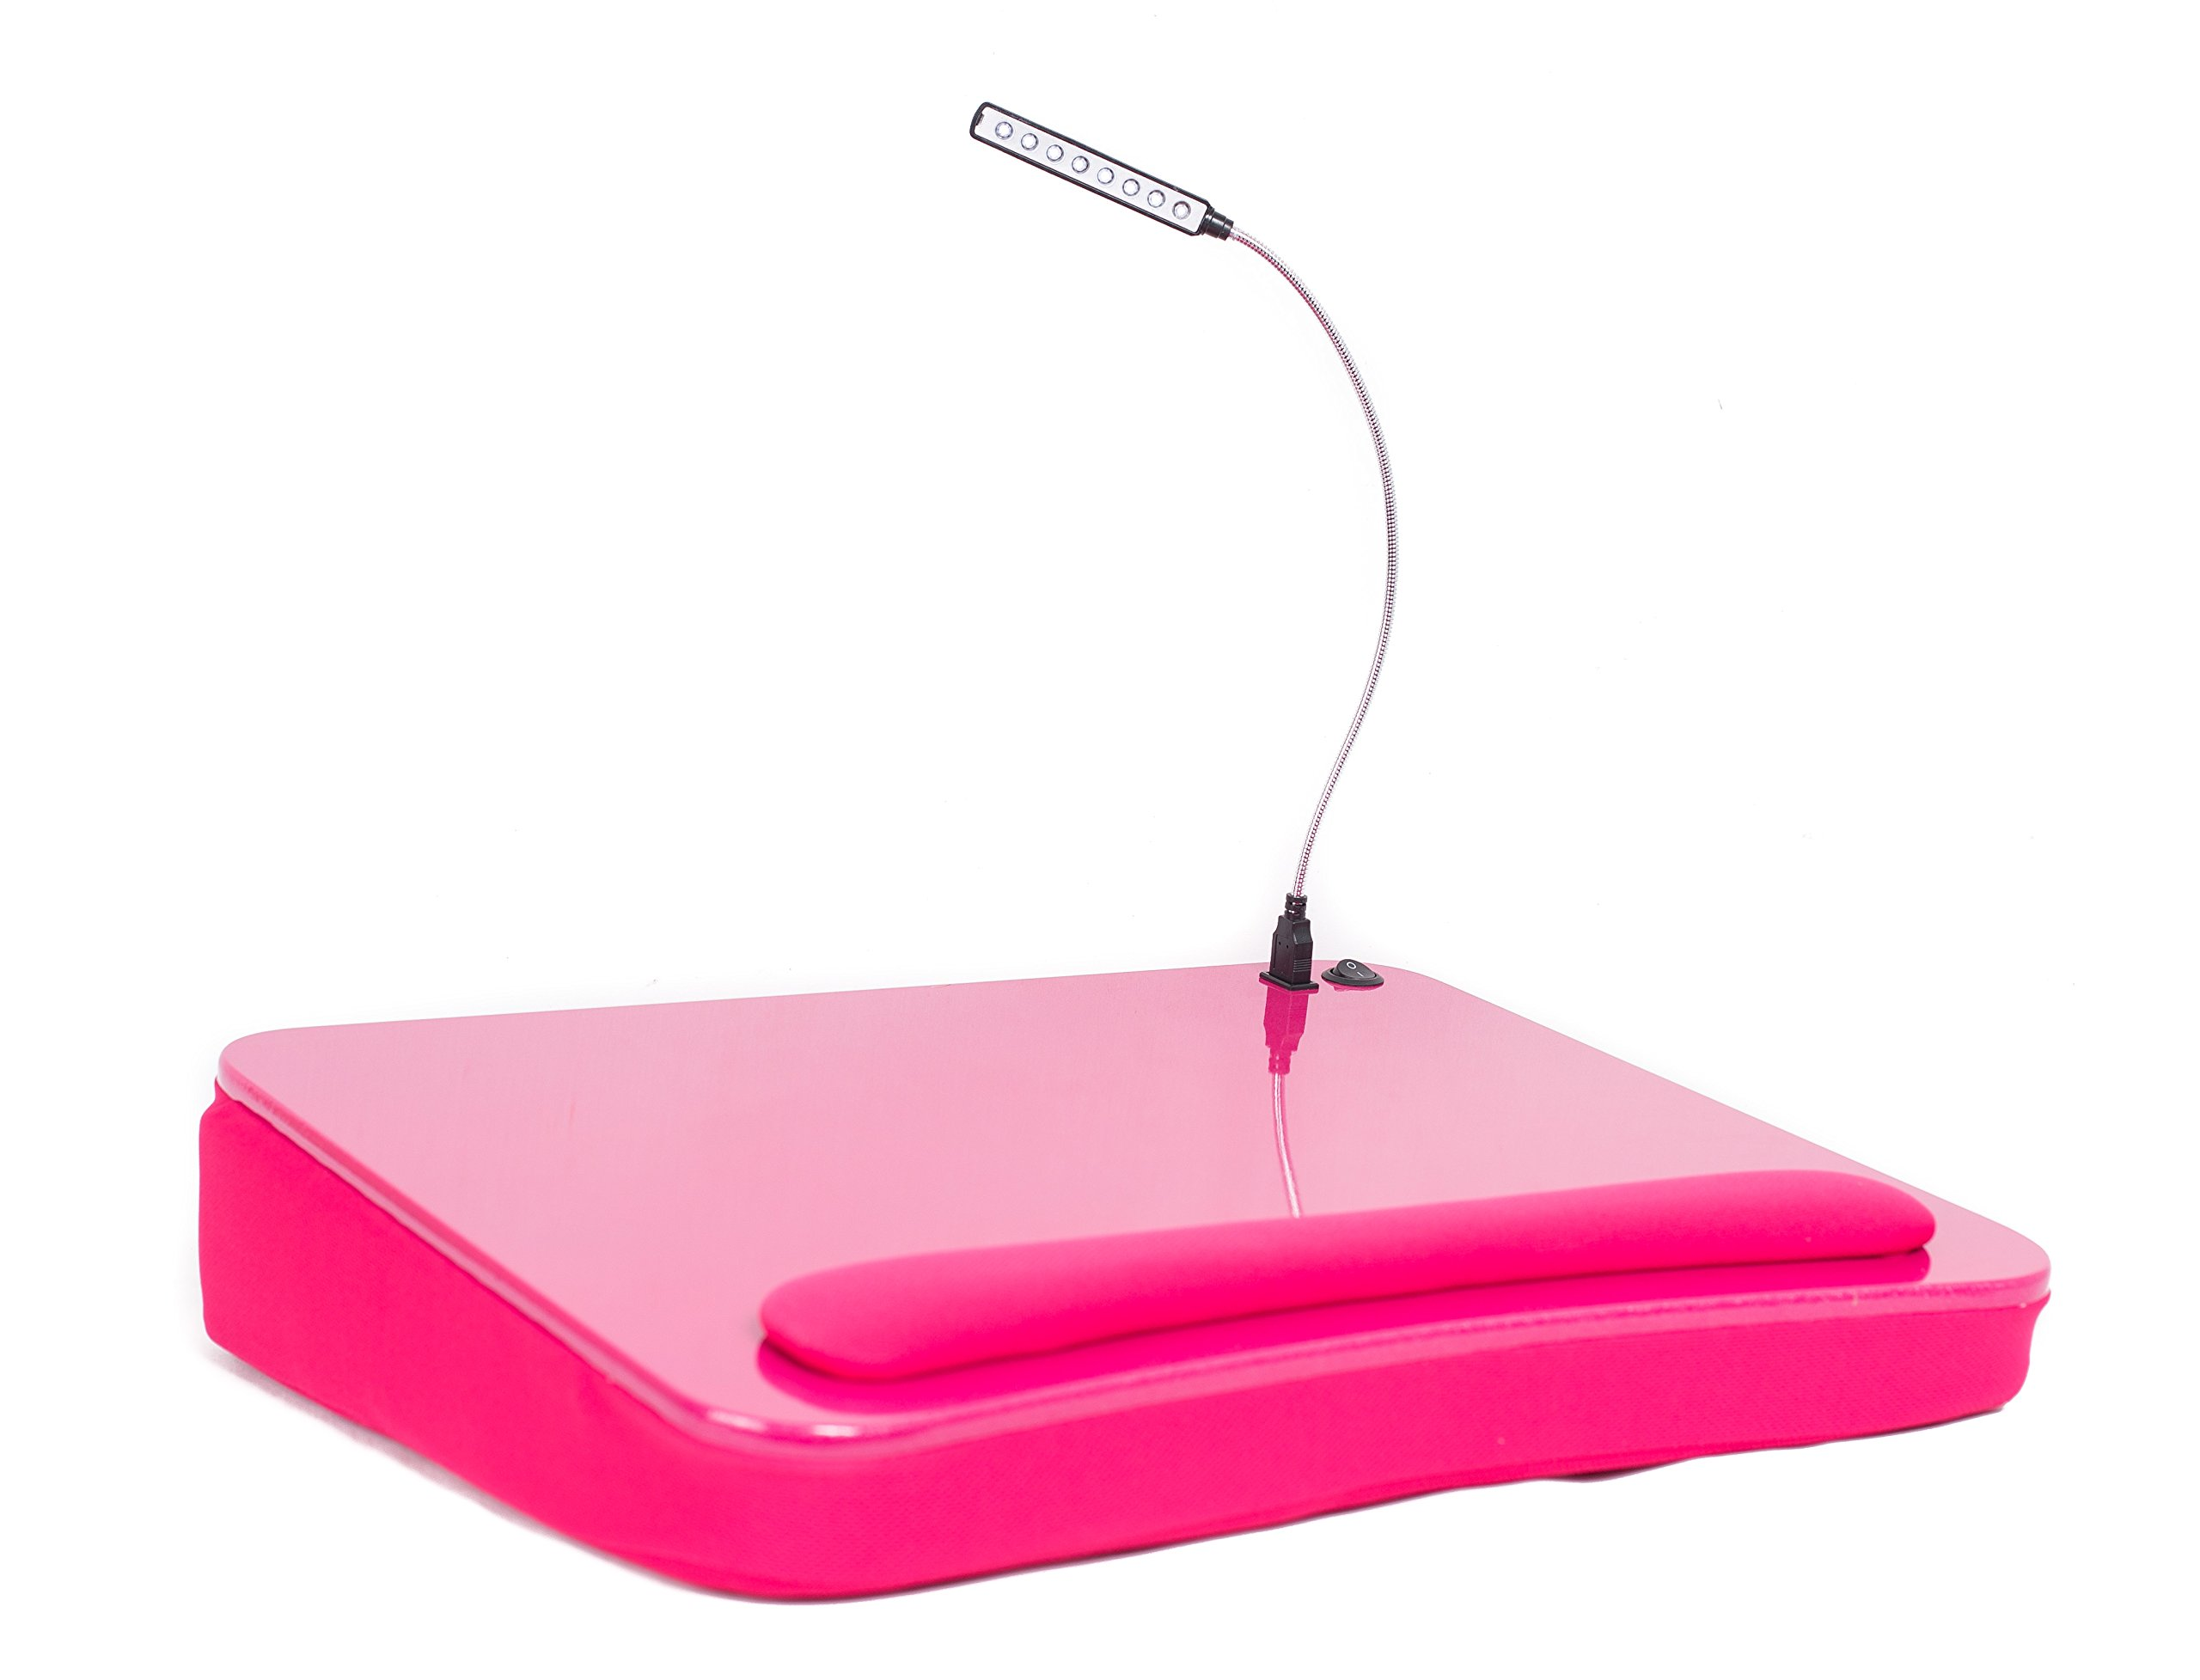 Sofia + Sam Lap Desk with USB Light (Pink)   Memory Foam Cushion   Supports Laptops Up To 17 Inches by Sofia + Sam (Image #2)